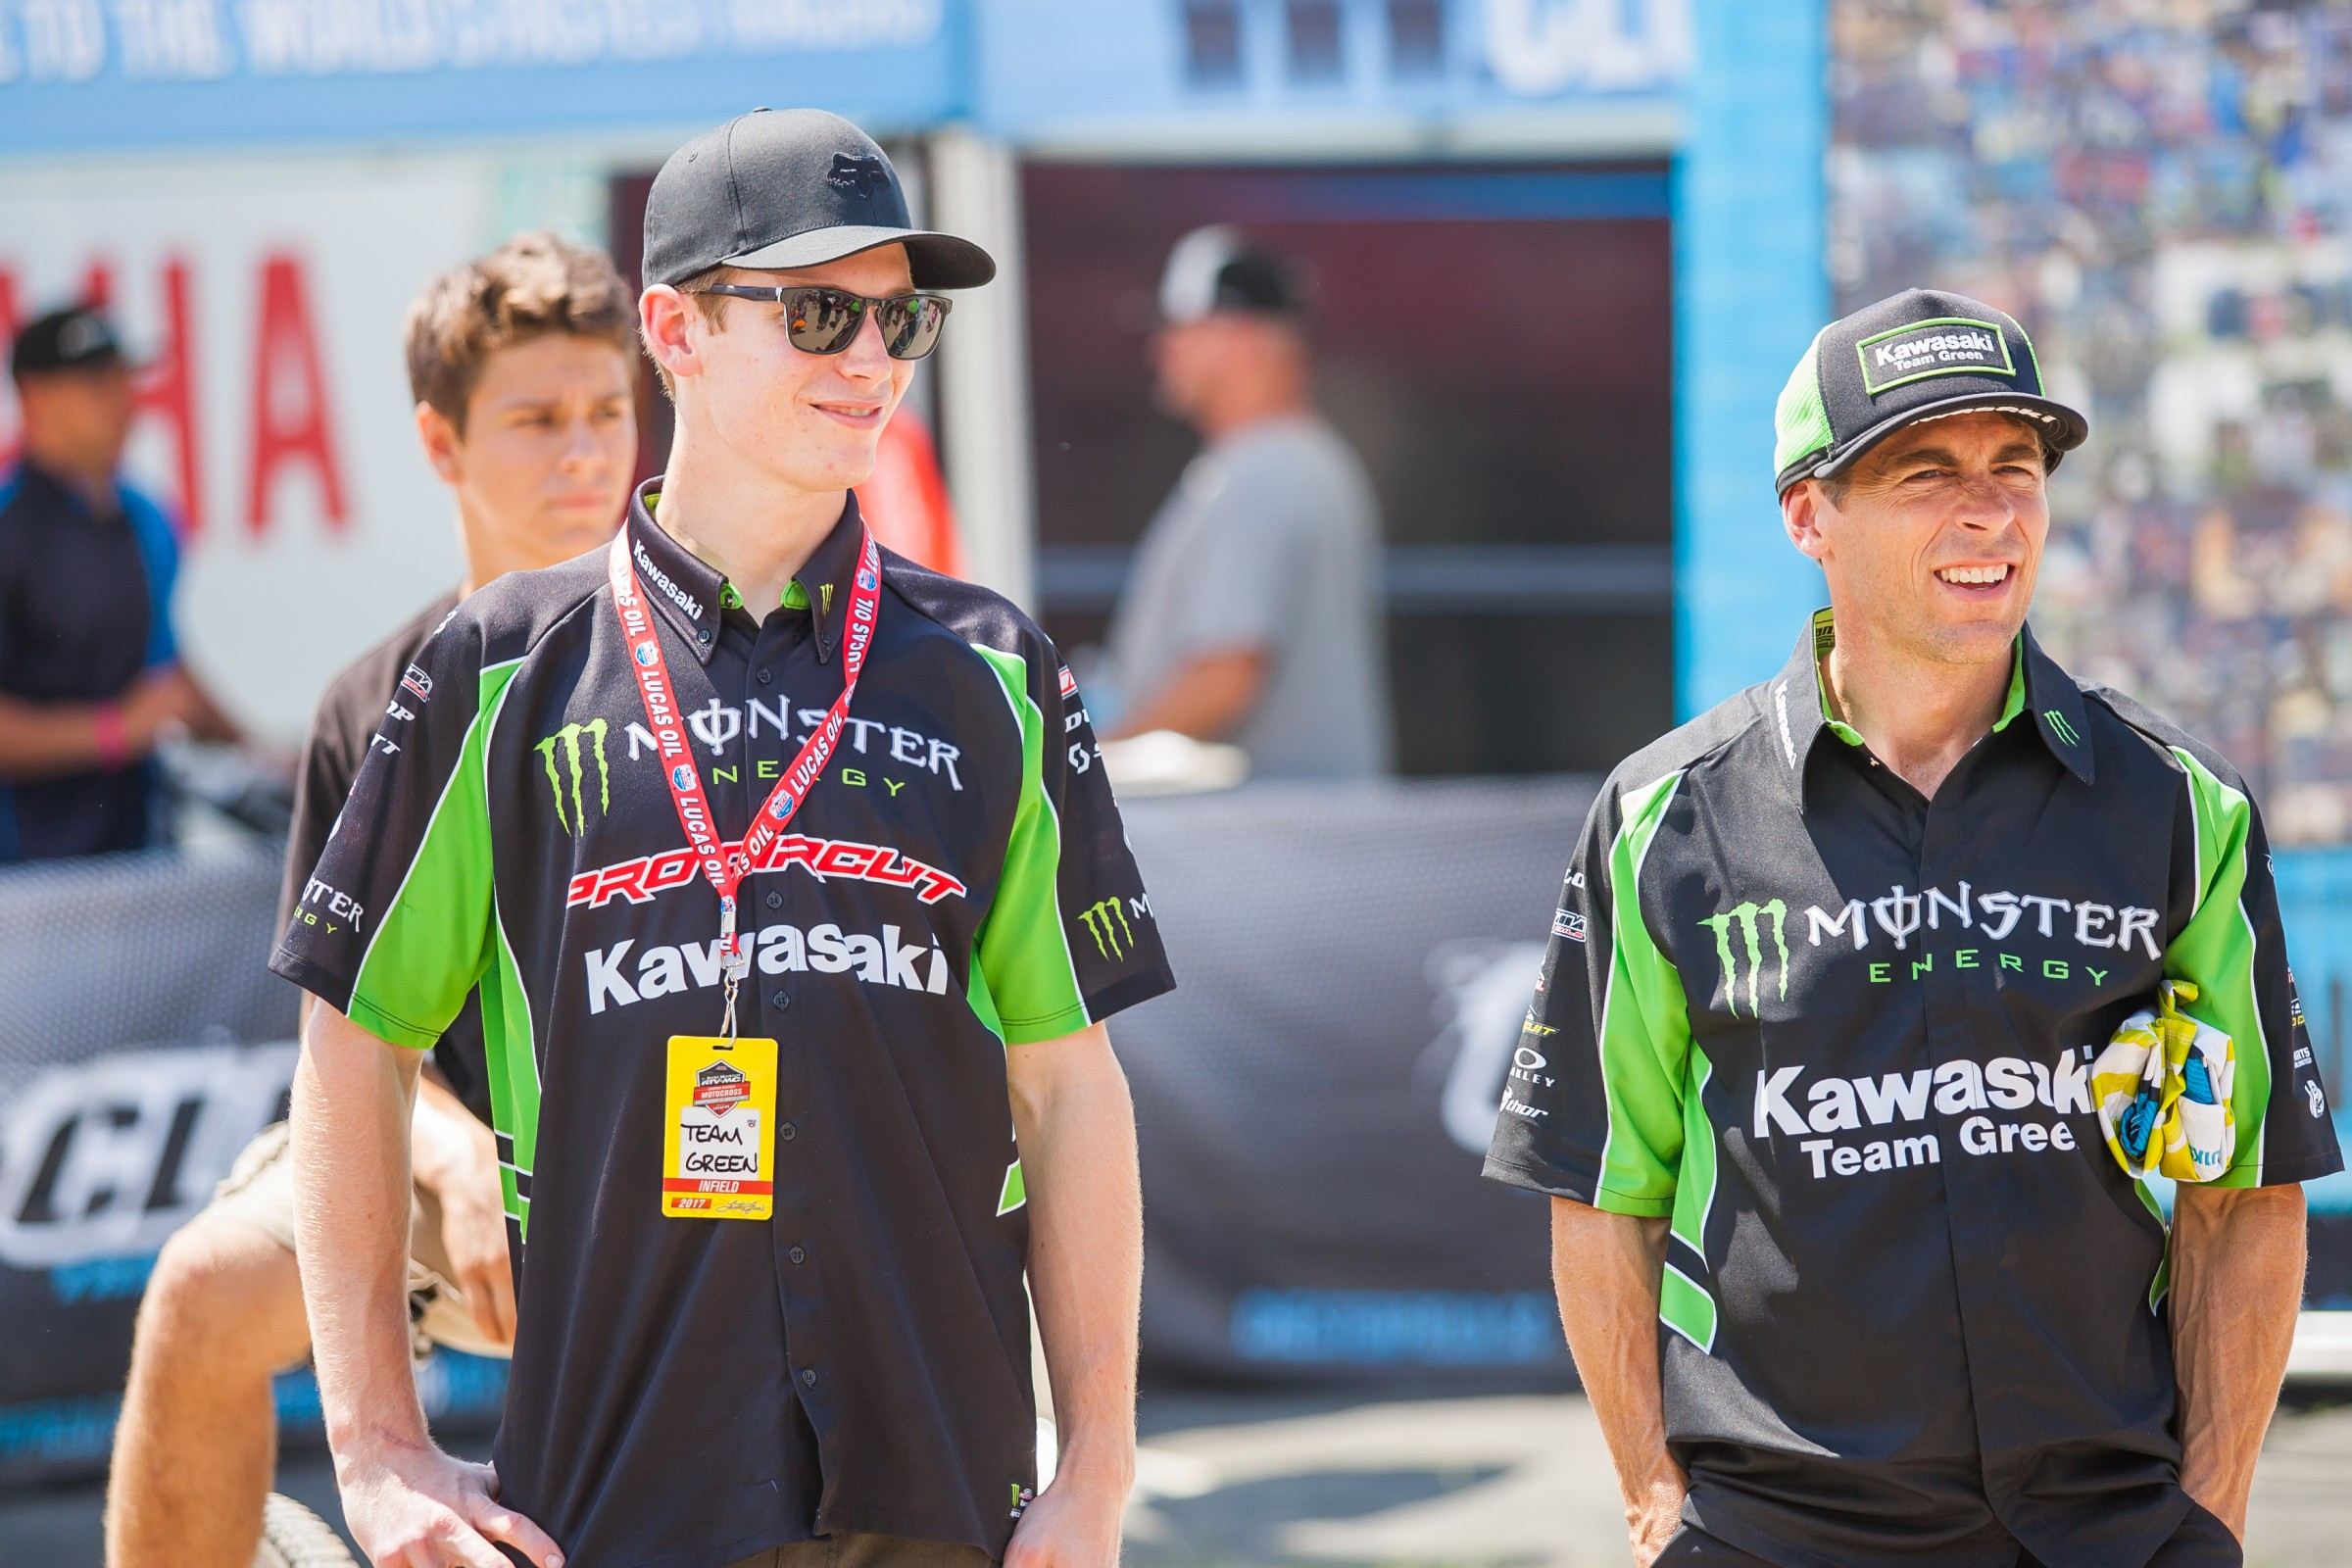 Cianciarulo also got some joy from watching two of his heroes get dunked for charity.